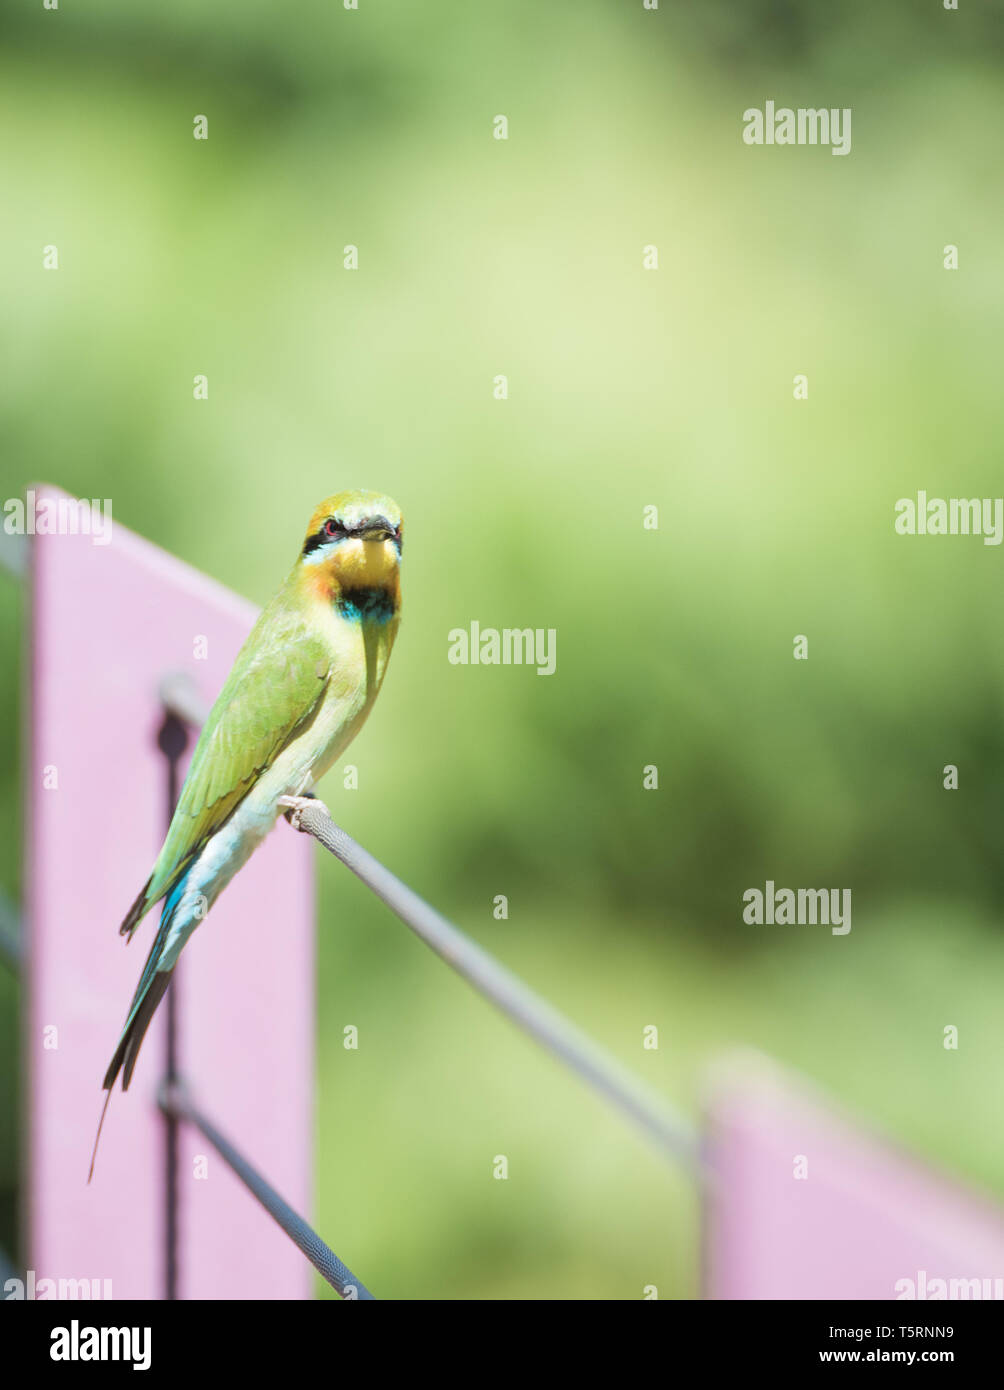 Rainbow bee-eater with colourful feathers perched in an outdoor setting in tropical Darwin, Australia - Stock Image